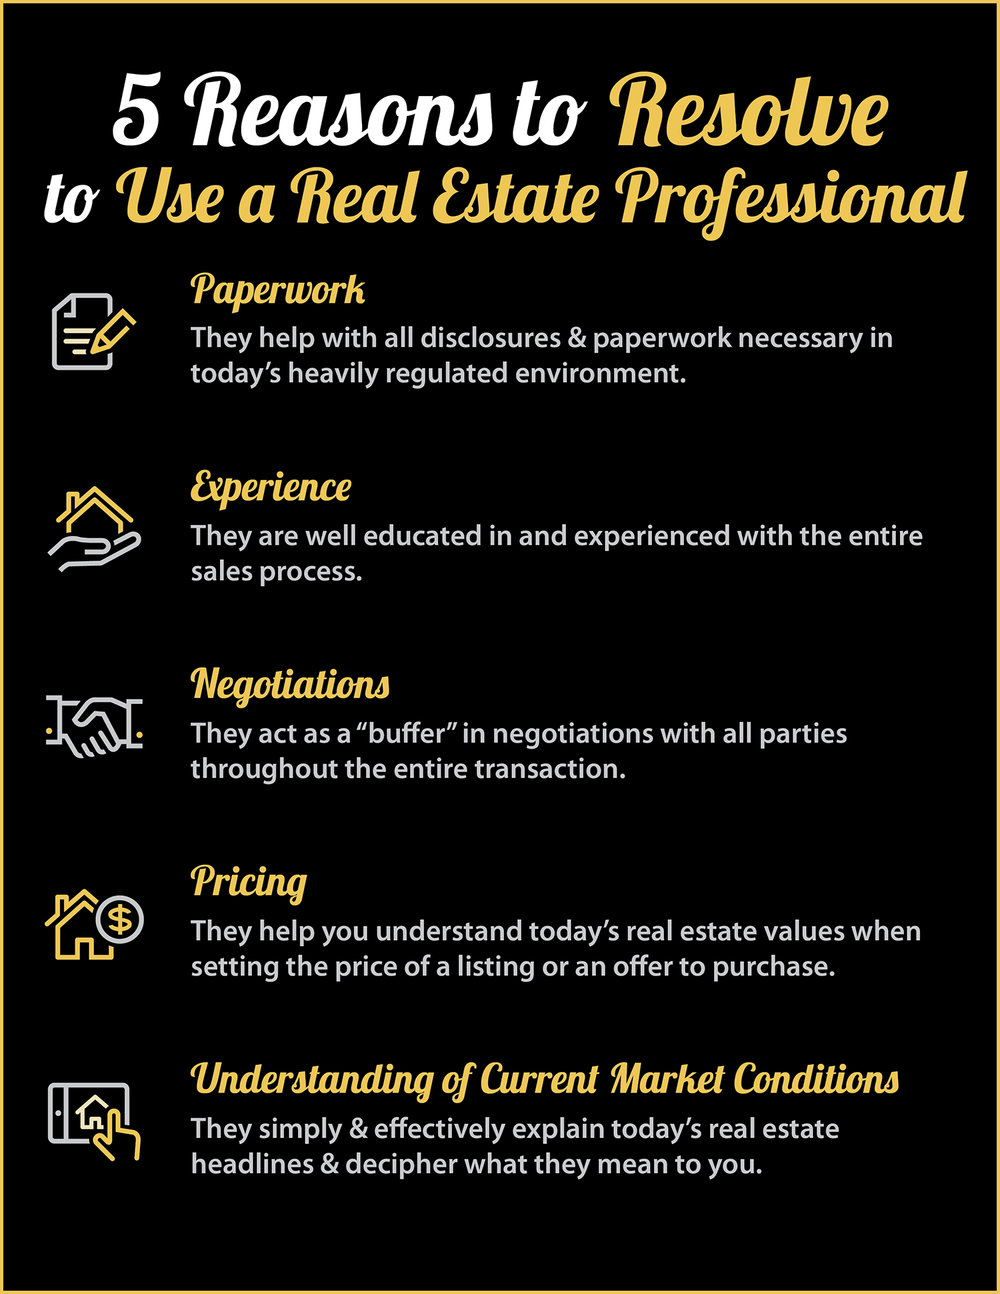 5 reasons to use an agent.jpg